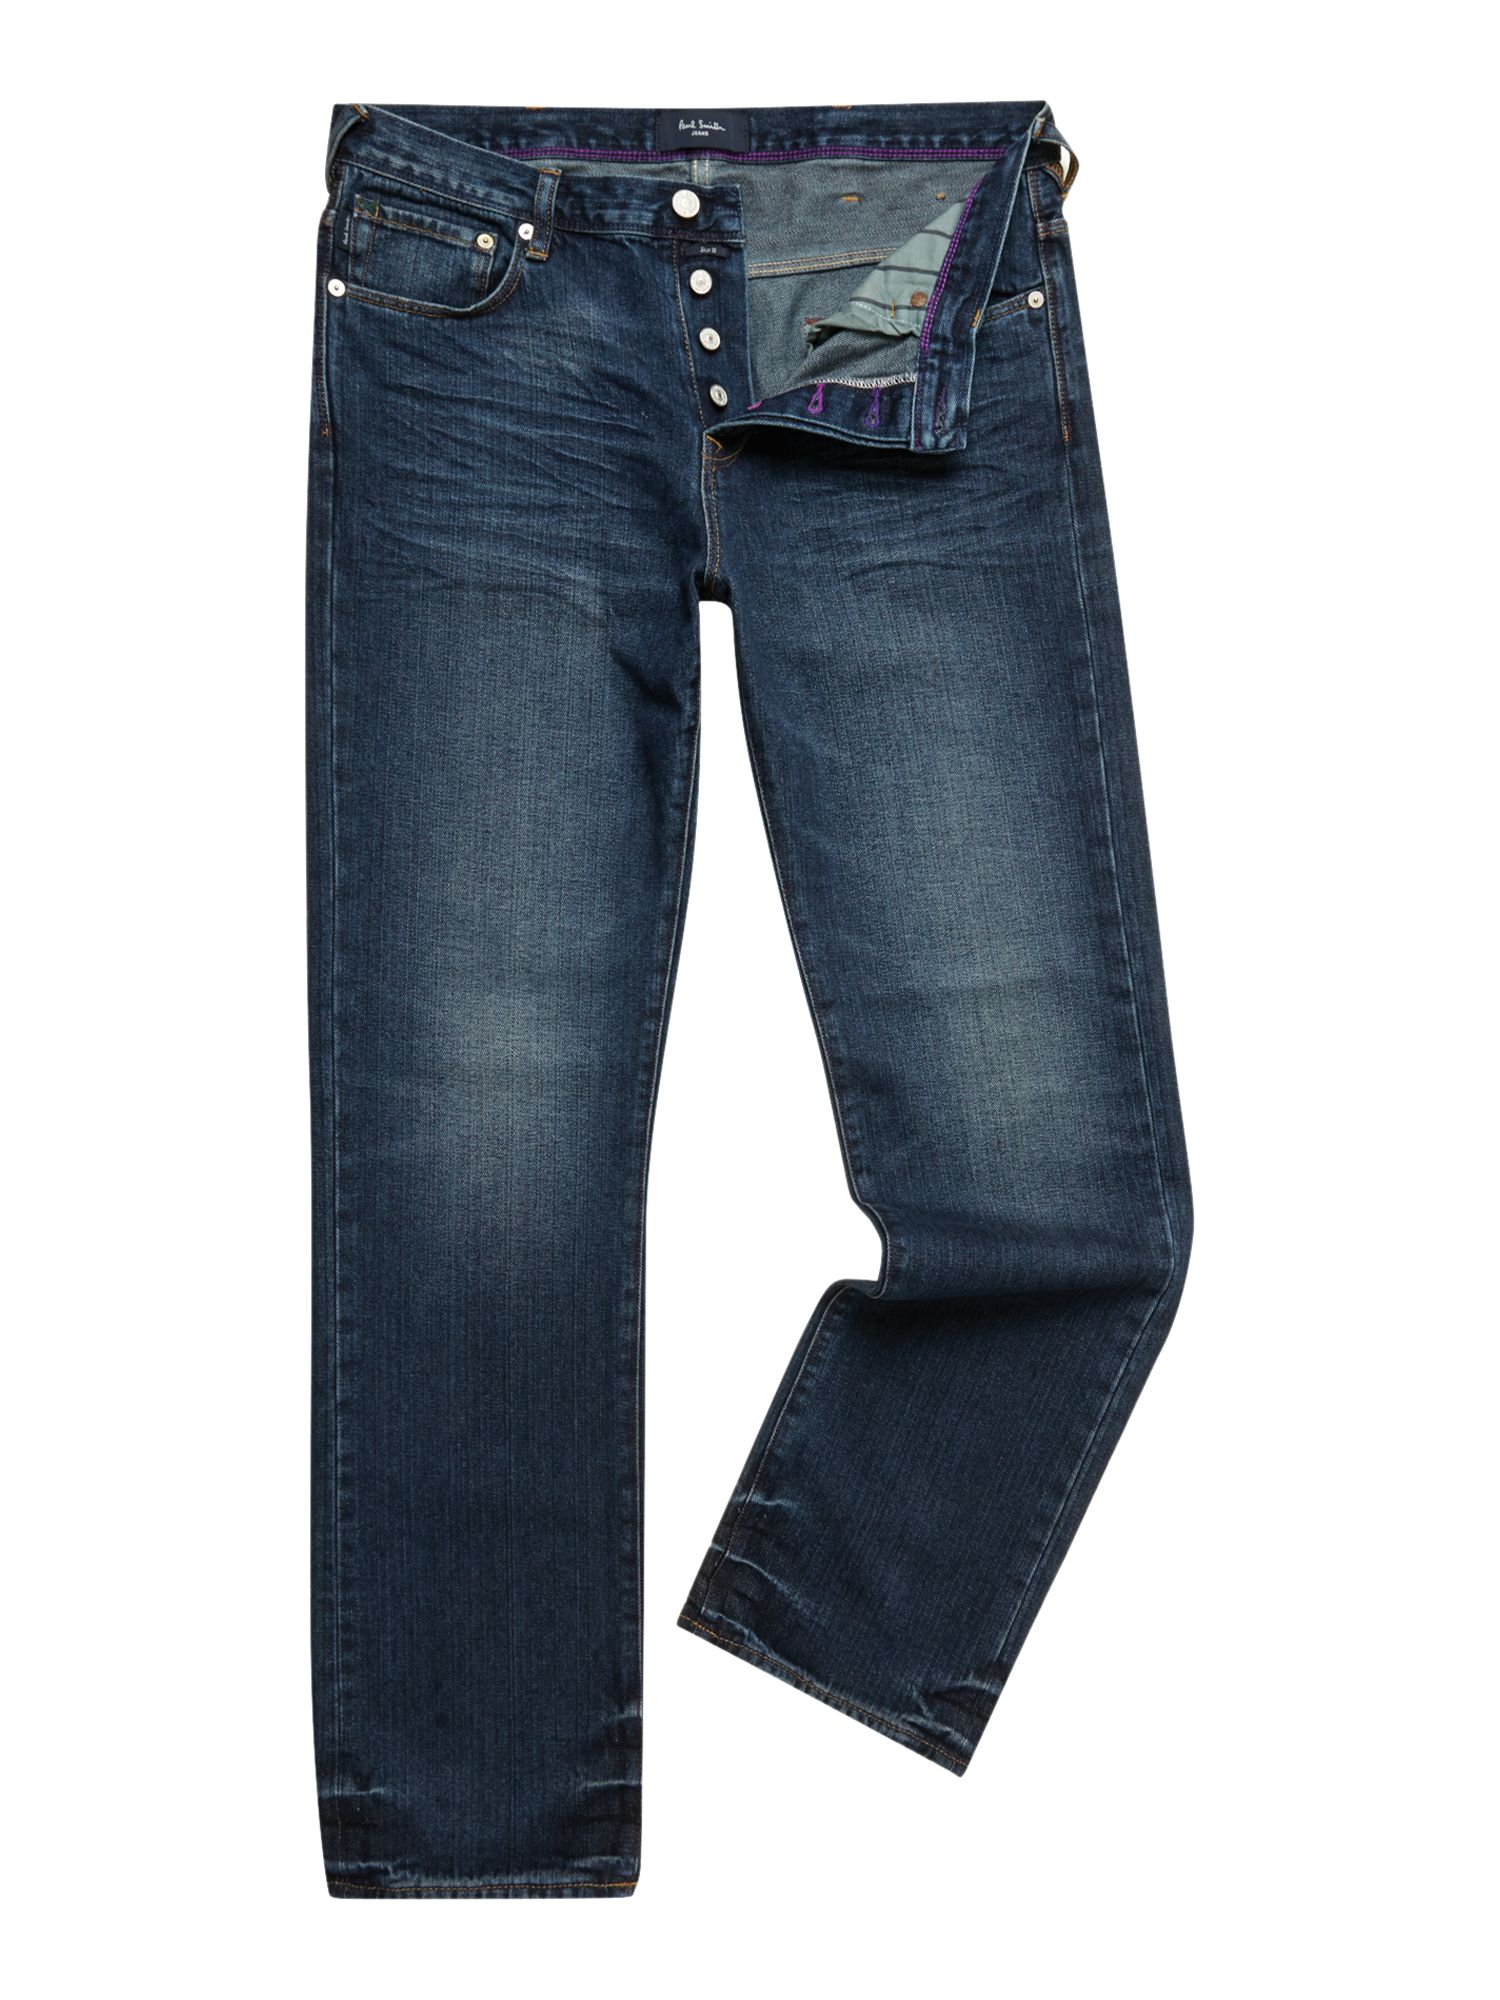 paul smith bootcut light wash jeans in blue for men denim. Black Bedroom Furniture Sets. Home Design Ideas